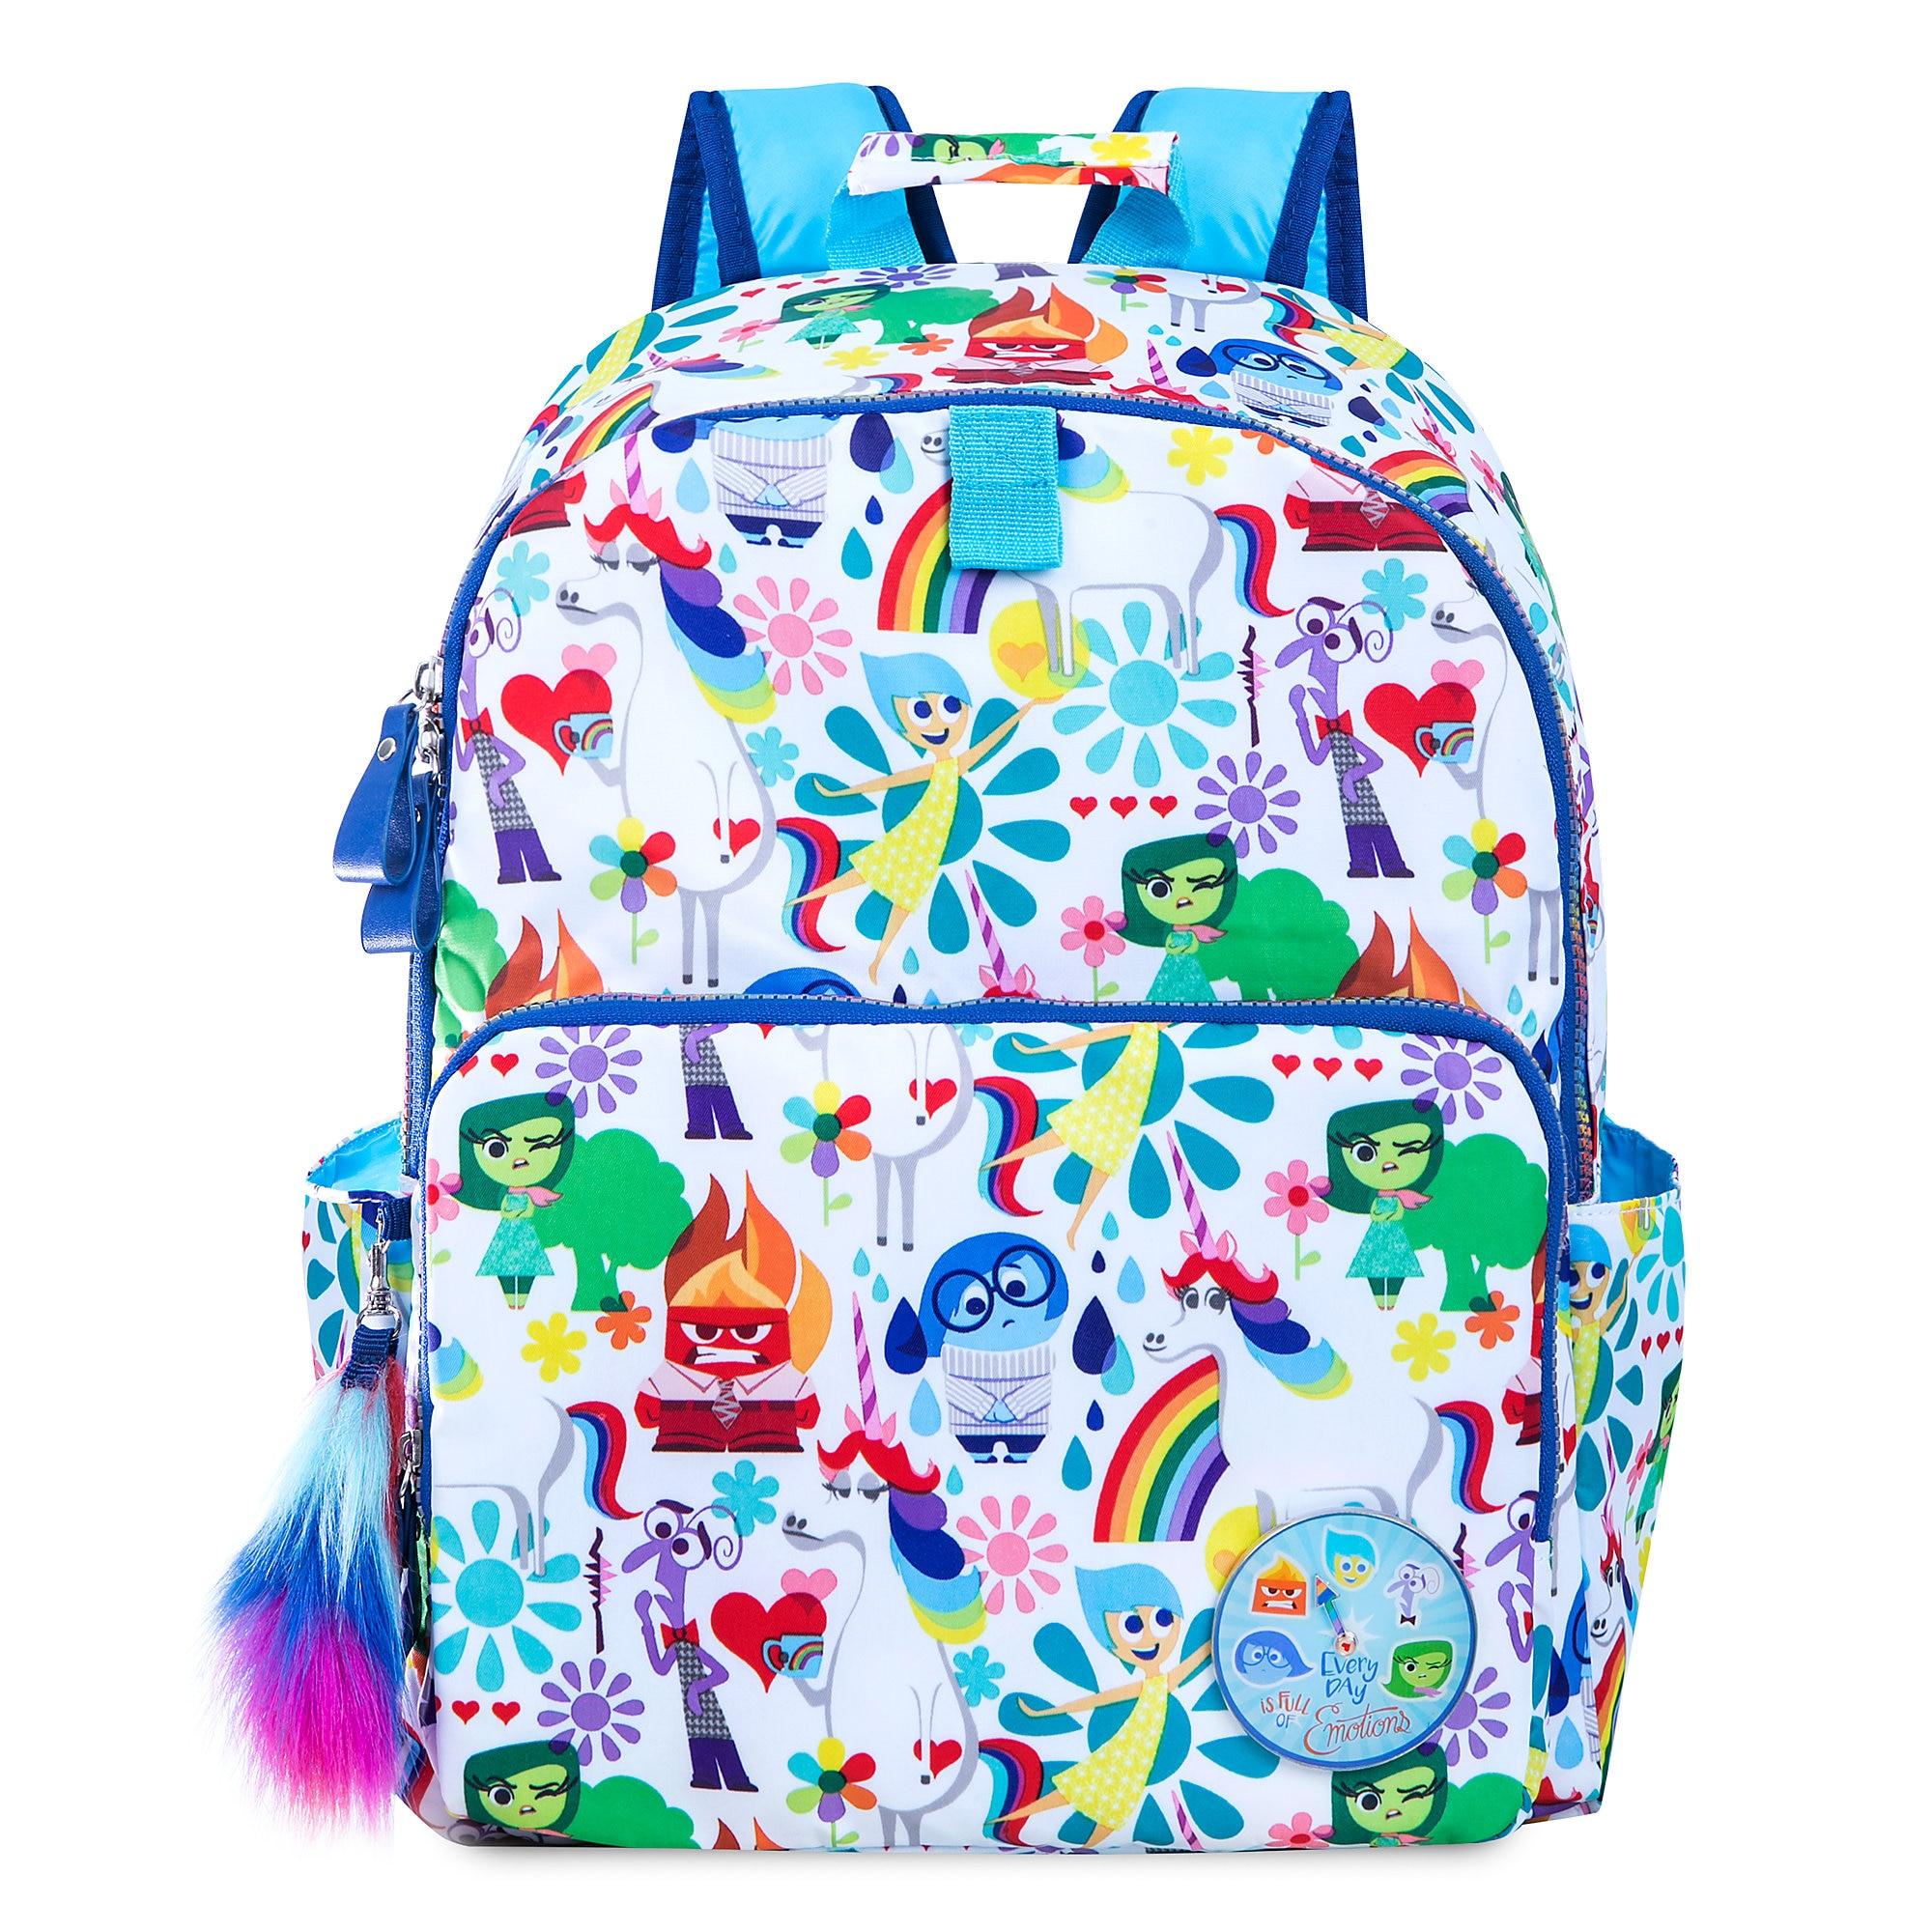 Inside Out Backpack - Personalizable